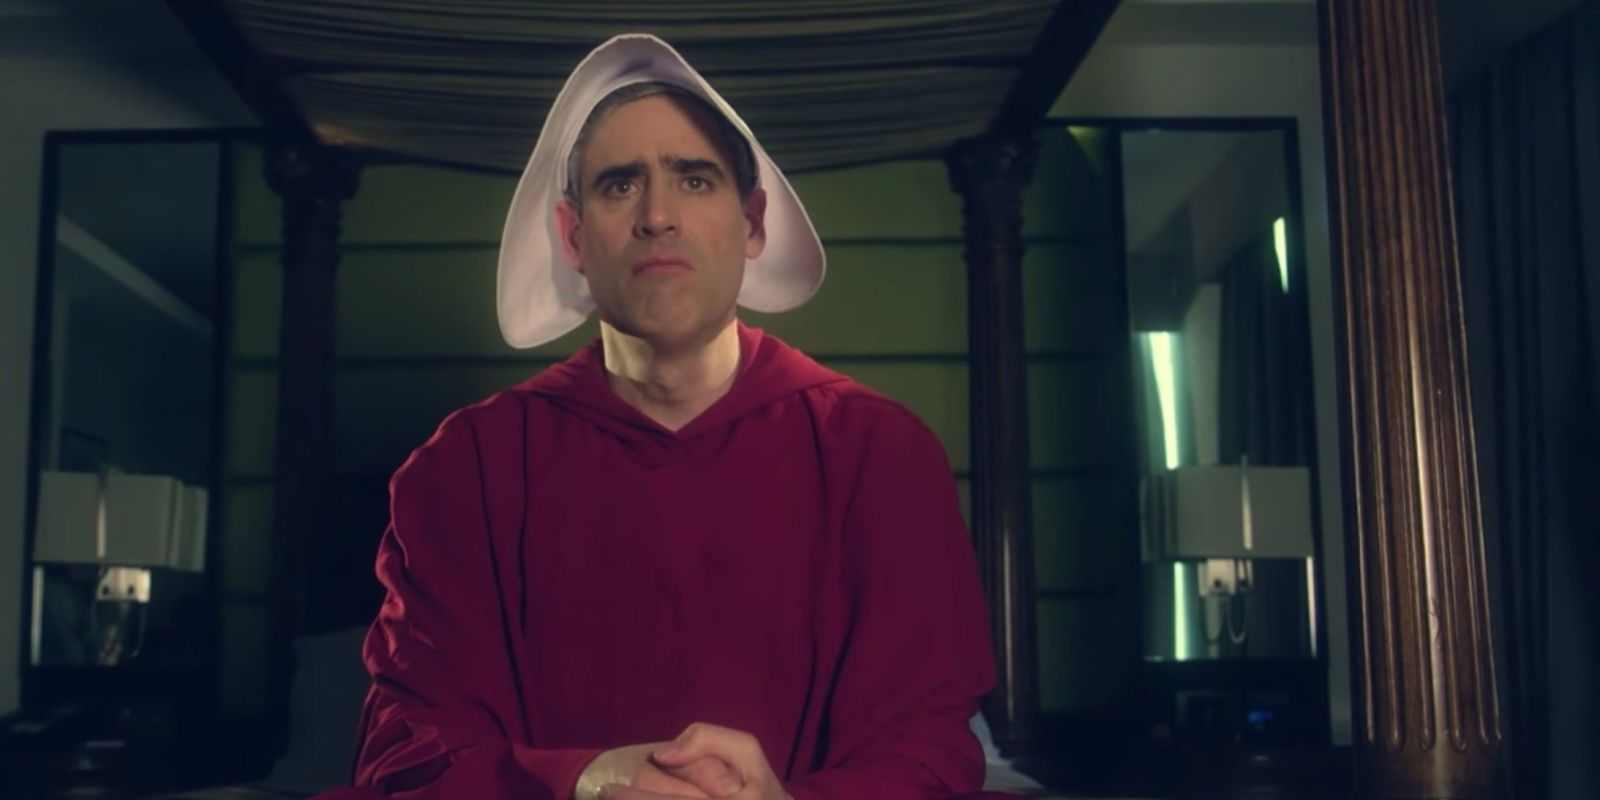 Stephen Mangan spoofs The Handmaid's Tale in BAFTA TV Craft Awards 2018 opening sketch